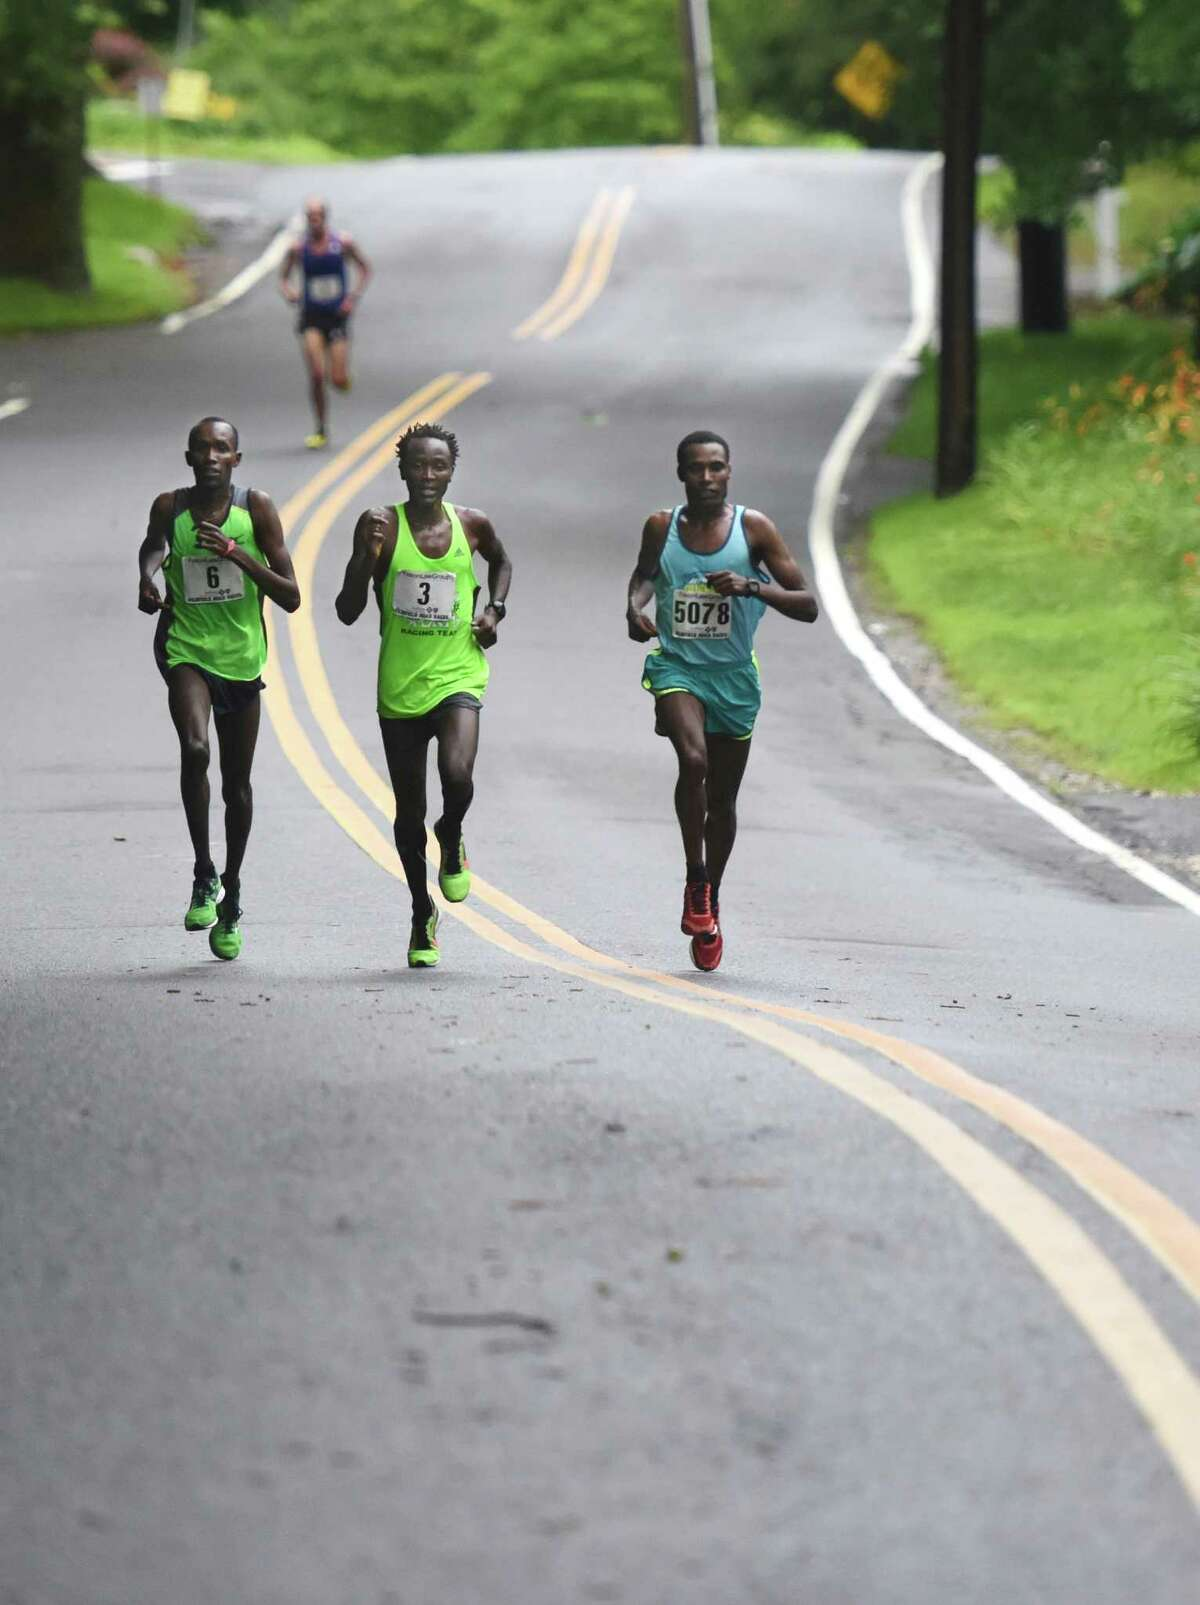 Second-place finisher Kenya's Josphat Kiptanui Too, left, third-place finisher Kenya's Eliud Ngetich, center, and race winner Ethiopia's Gosa Girma Tefera battle it out midway through the Faxon Law Group Fairfield Half Marathon at Jennings Beach in Fairfield, Conn. Sunday, June 28, 2015. Gosa Girma Tefera, of Ethiopia, was the first place overall finisher with a time of 1:04:05 and Etaferahu Temesgen, of Ethiopia, was the first female finisher with a time of 1:14:09.